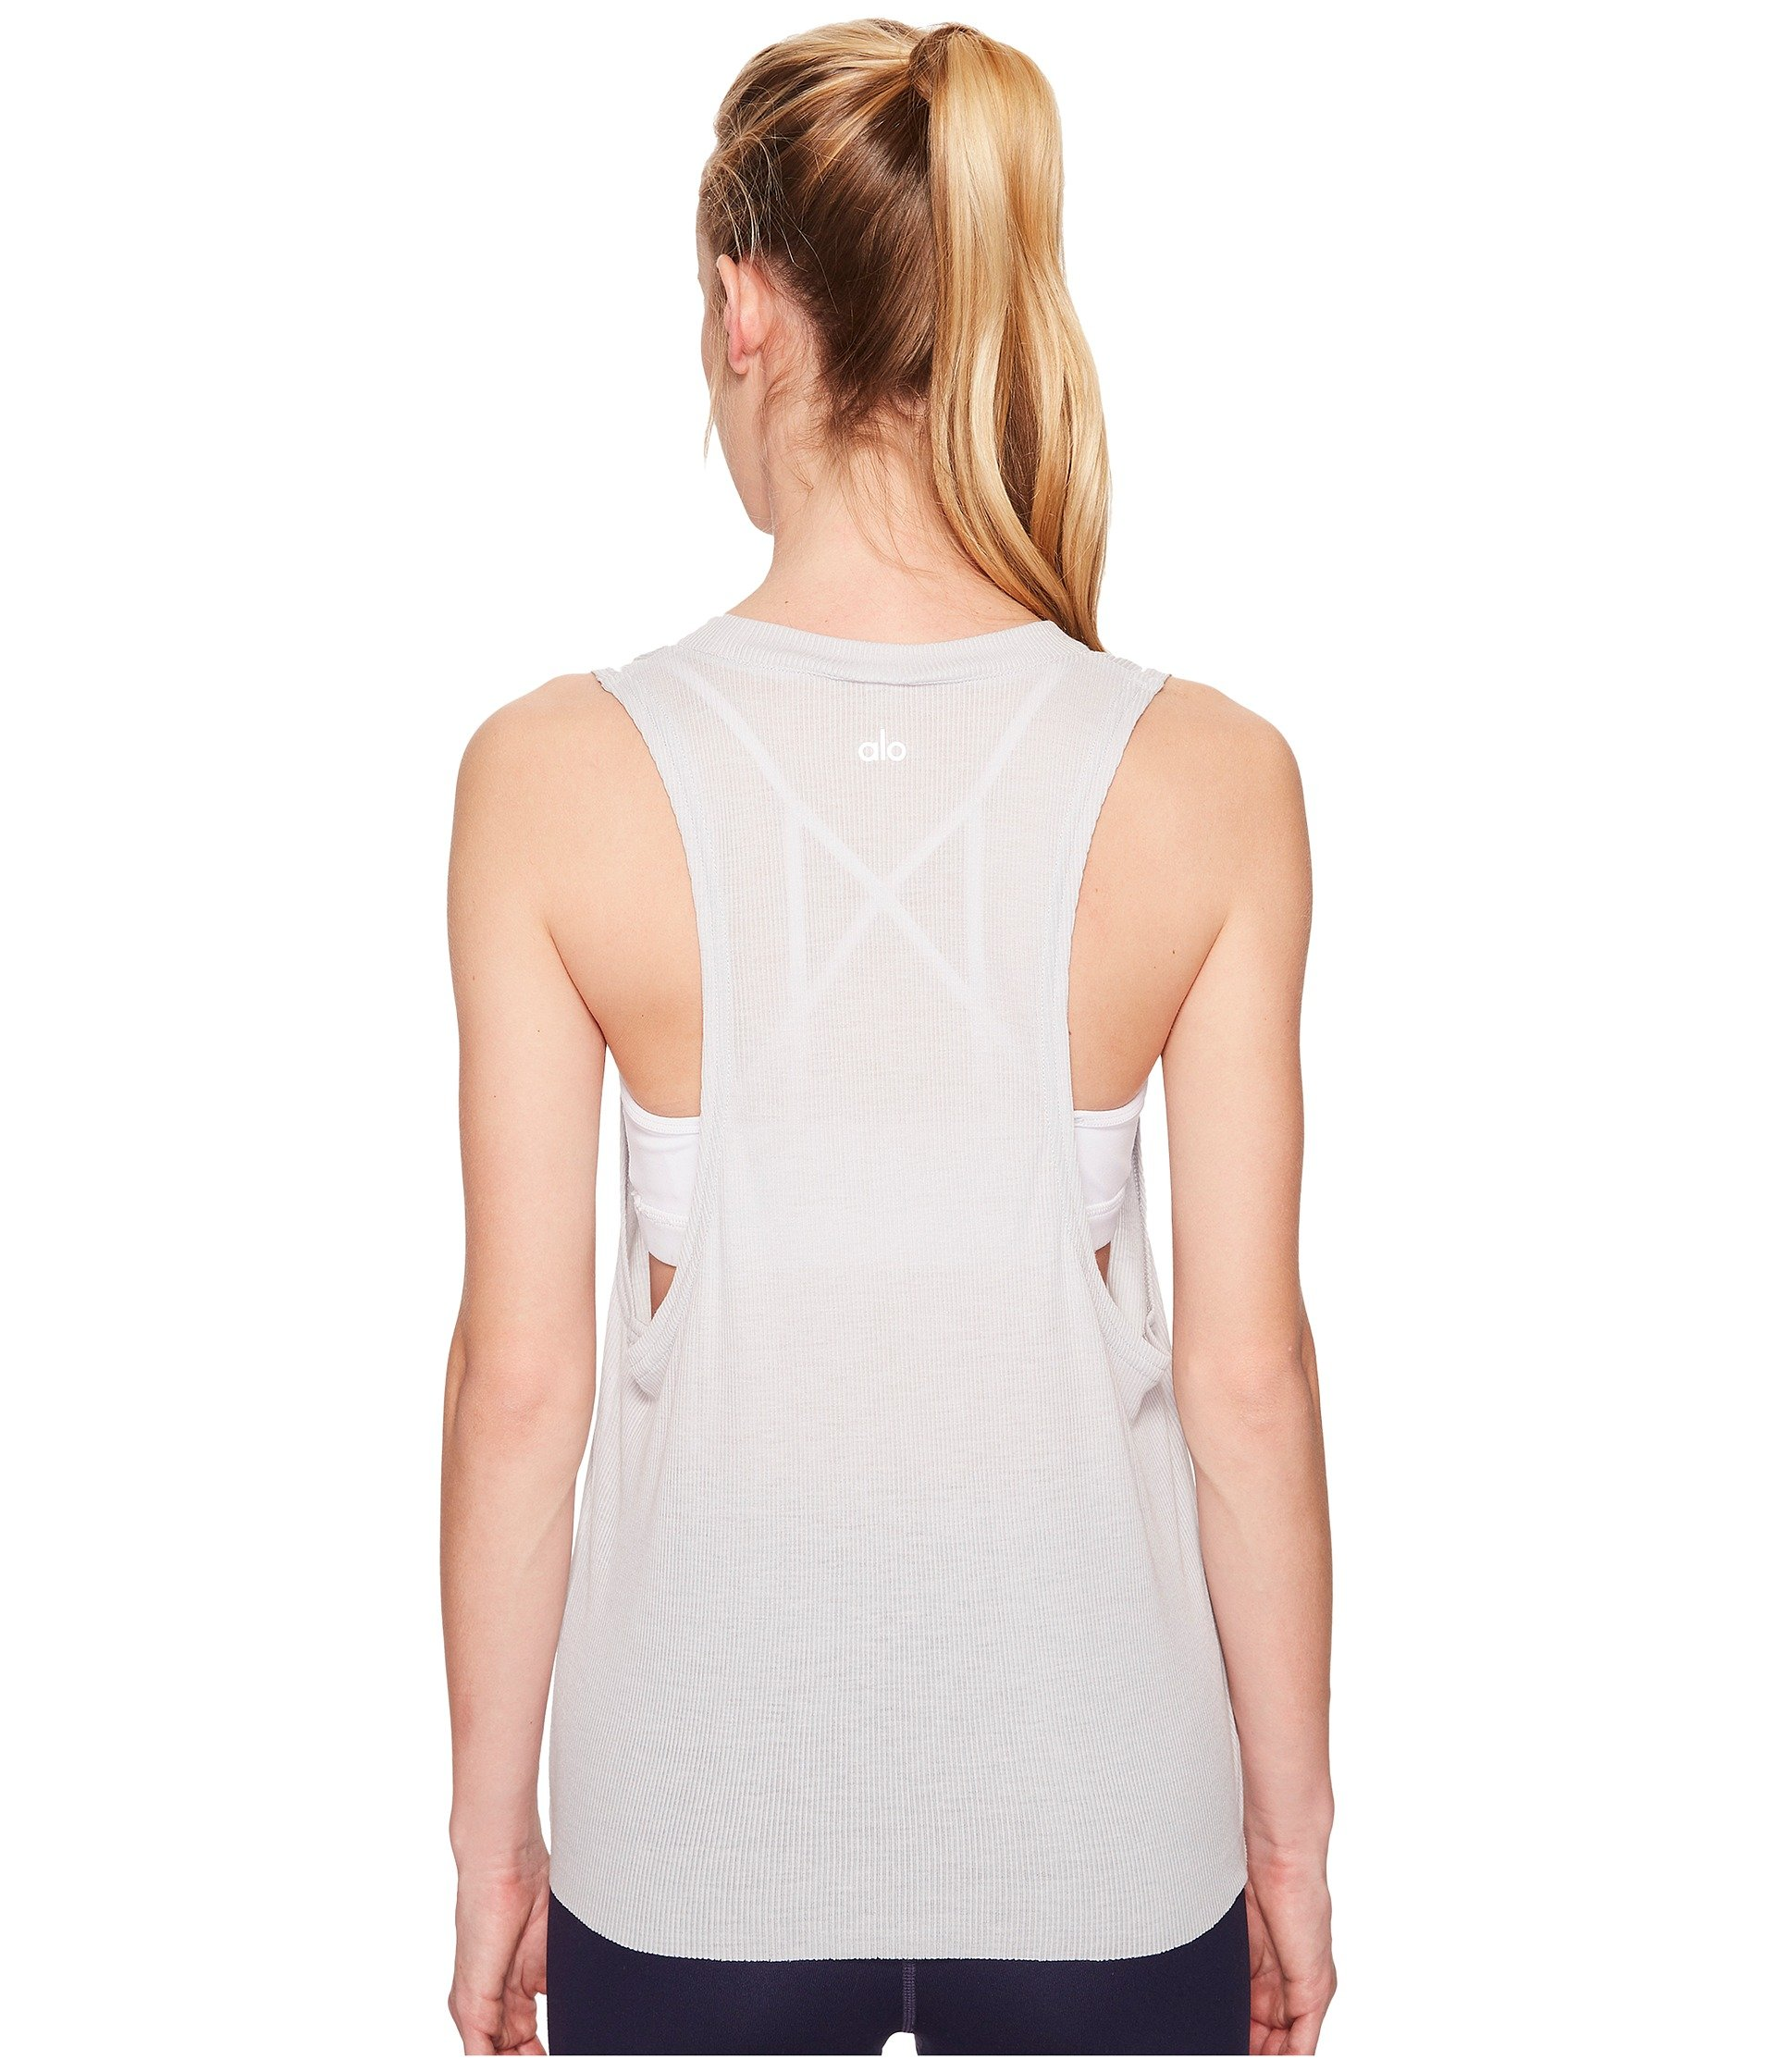 prior Grey Heat Alo Season wave Dove Tank Top XSYXw6Zqf